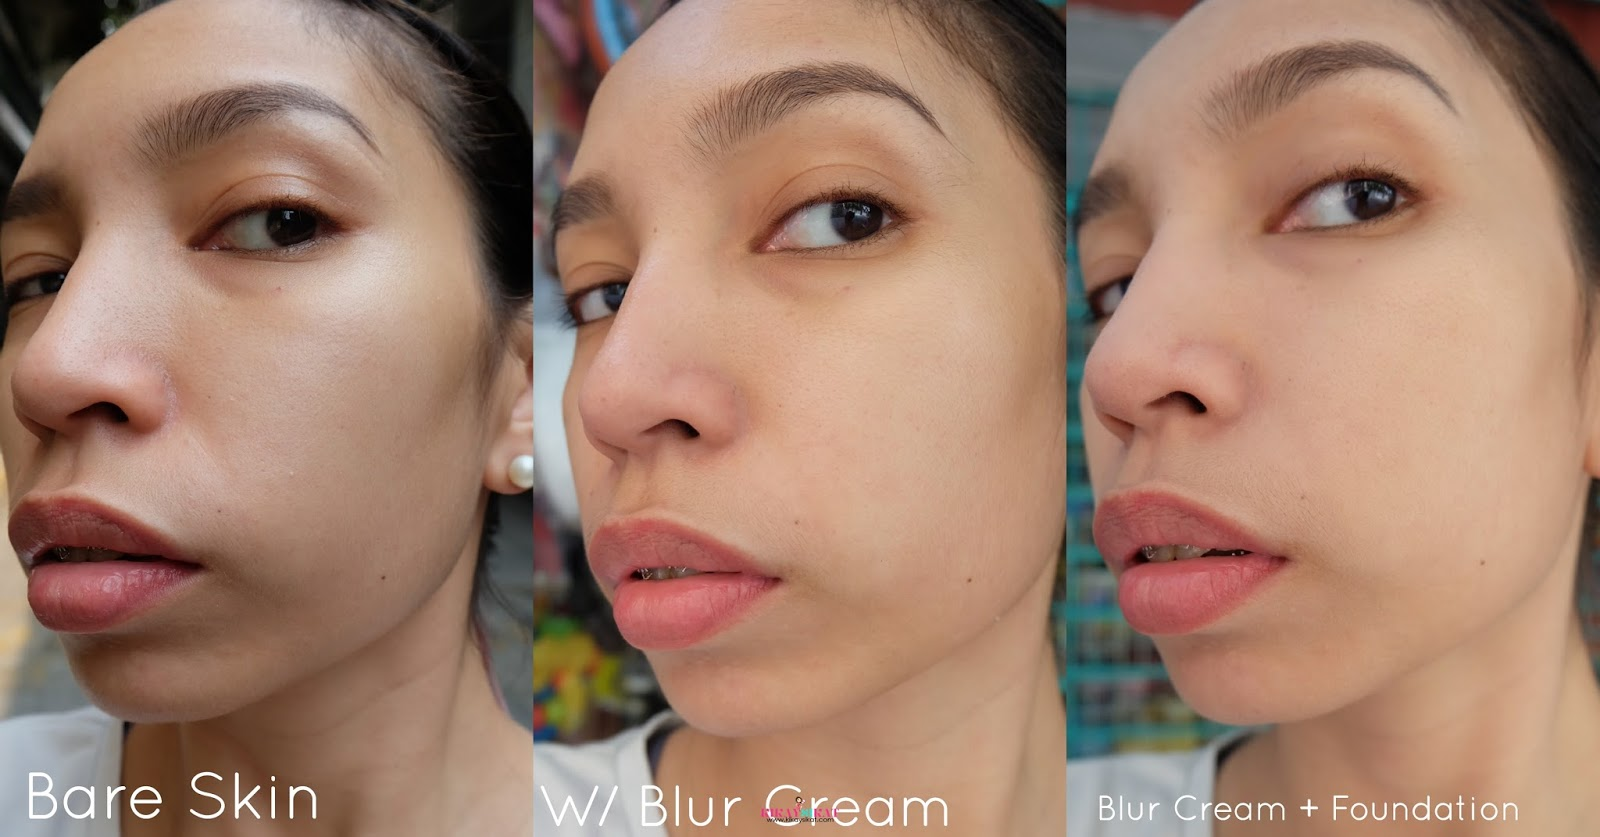 Pore Filler Makeup Saubhaya Nyx Cosmetics Shine Killer Sk01 Click Image To Zoom In My Face And Really See The Pores Filled